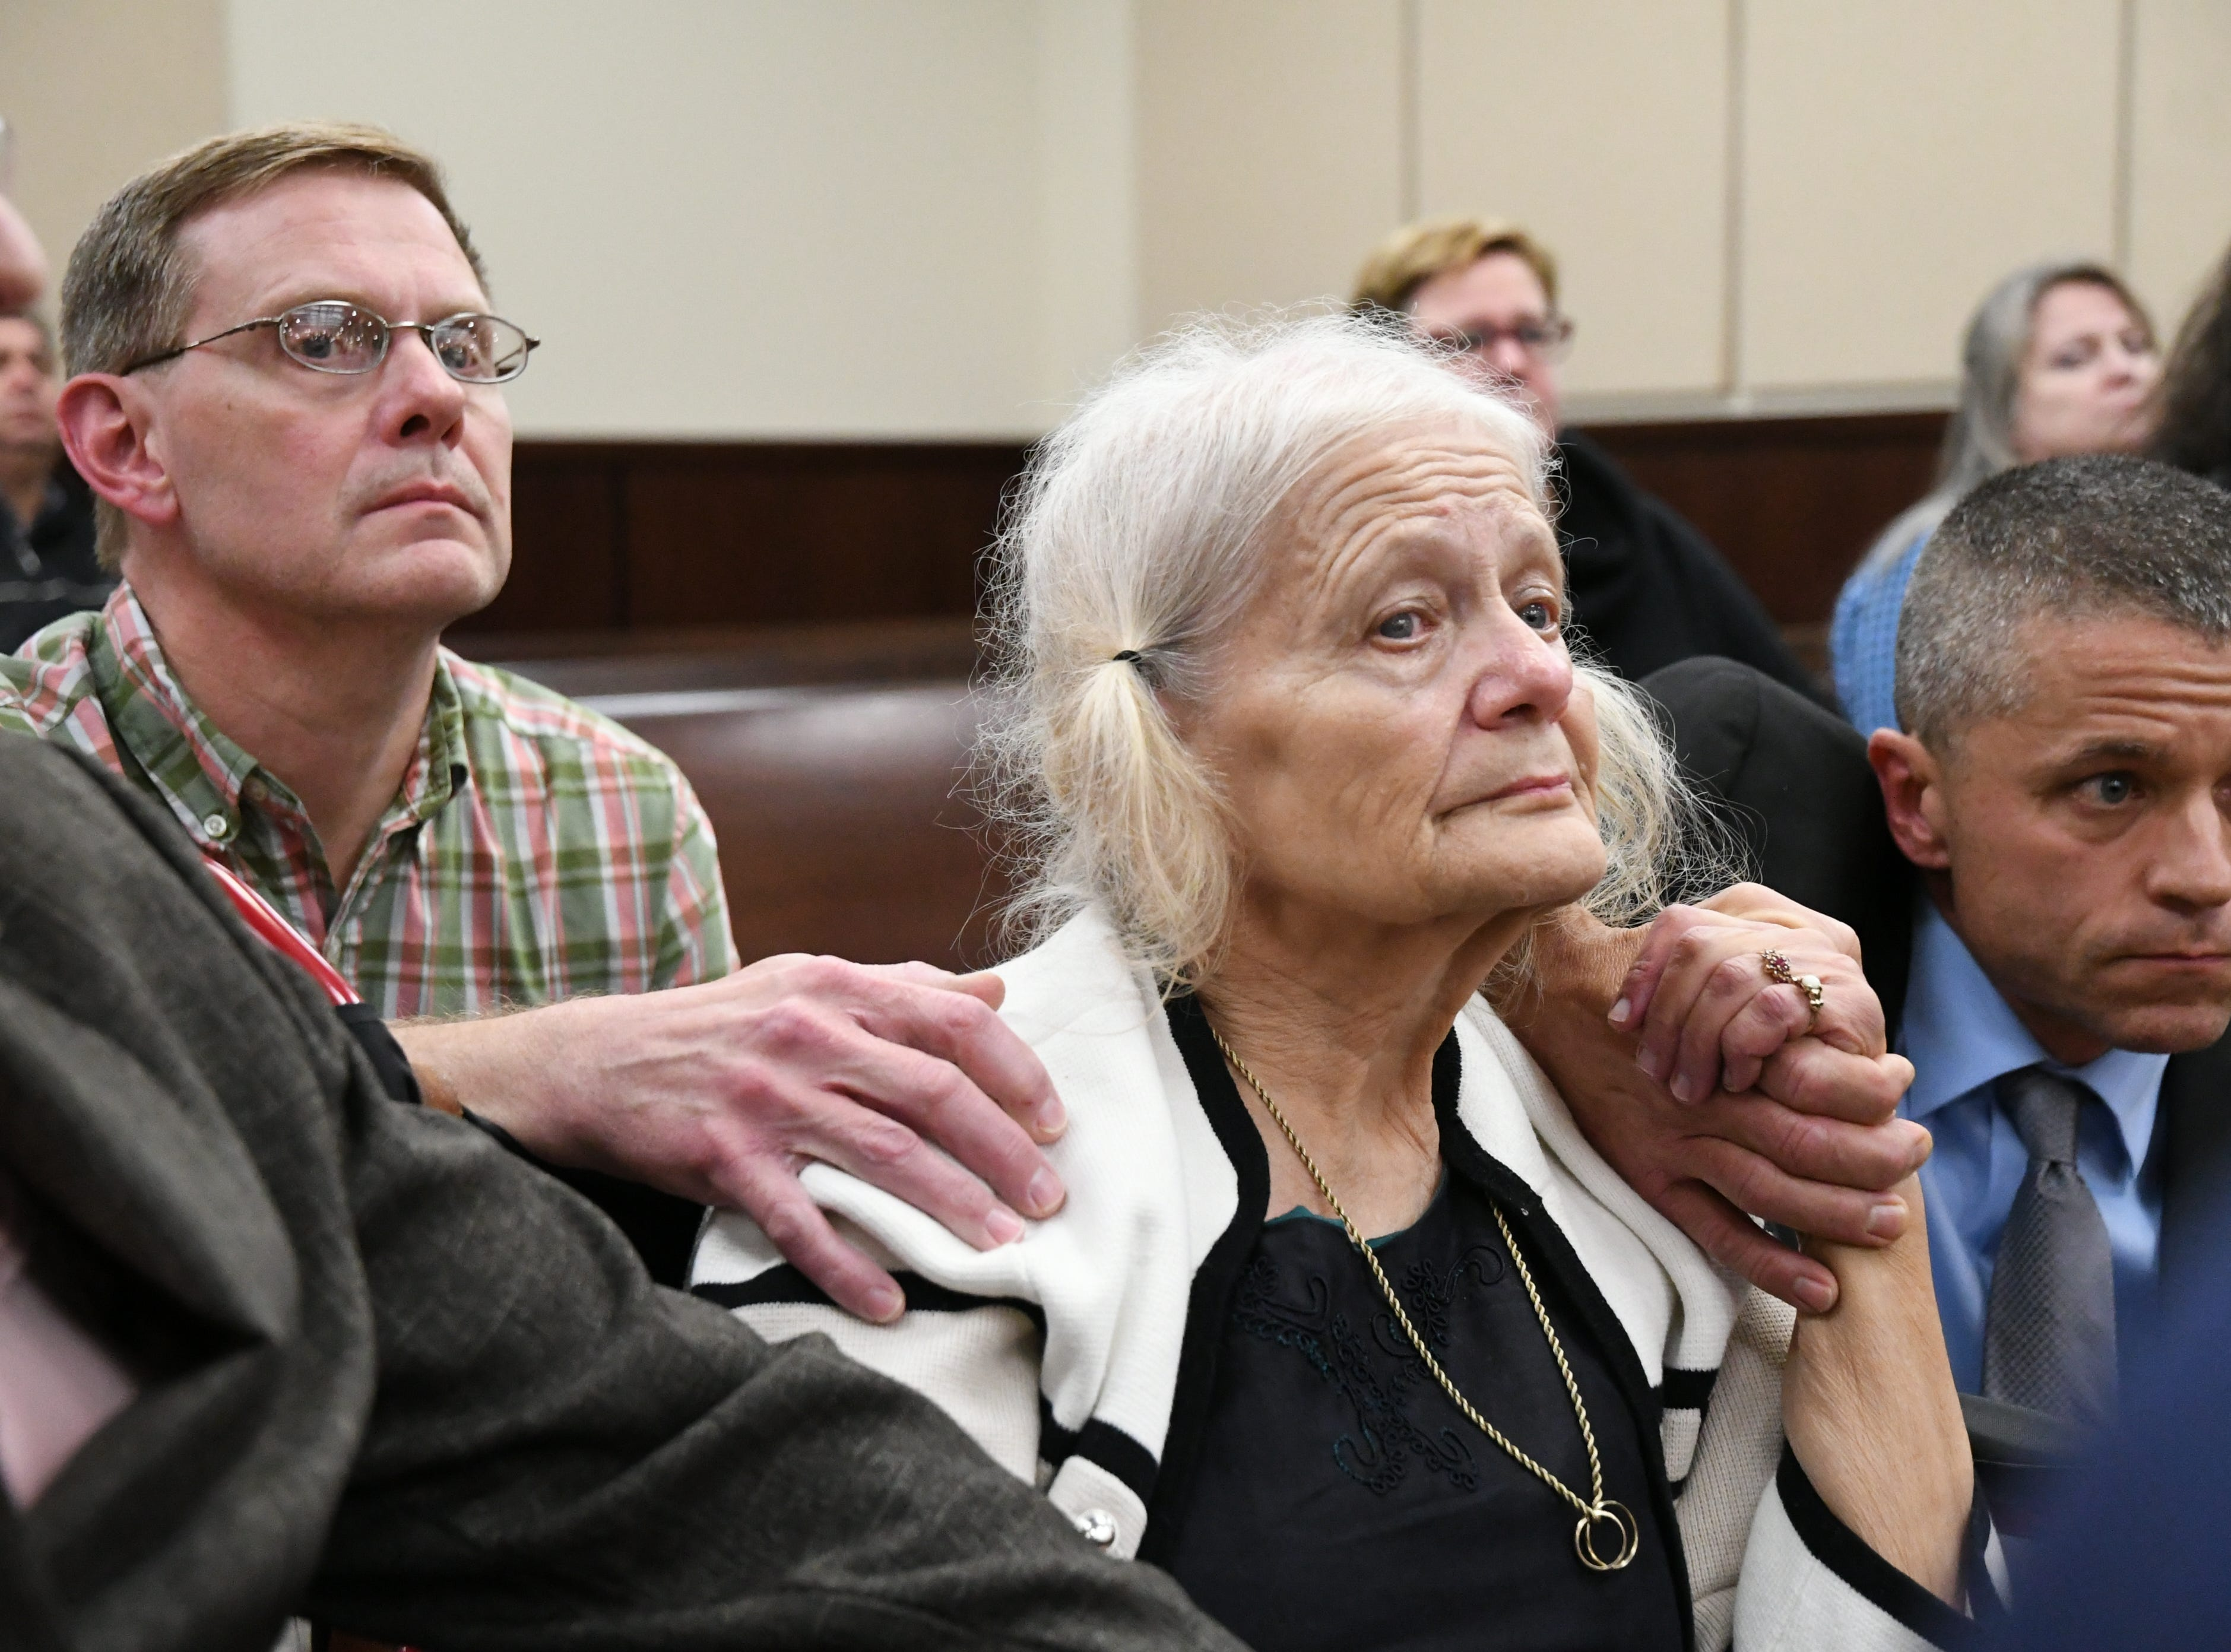 Nick Williams, left, brother of Mike Williams, the man who was shot and killed by his best friend Brian Winchester, 18 years ago, and his mother Cheryl Williams, center, mother of Mike Williams, full of hope, await the verdicts in the trial against Denise Williams, Mike's former wife, Friday, Dec. 14, 2018.